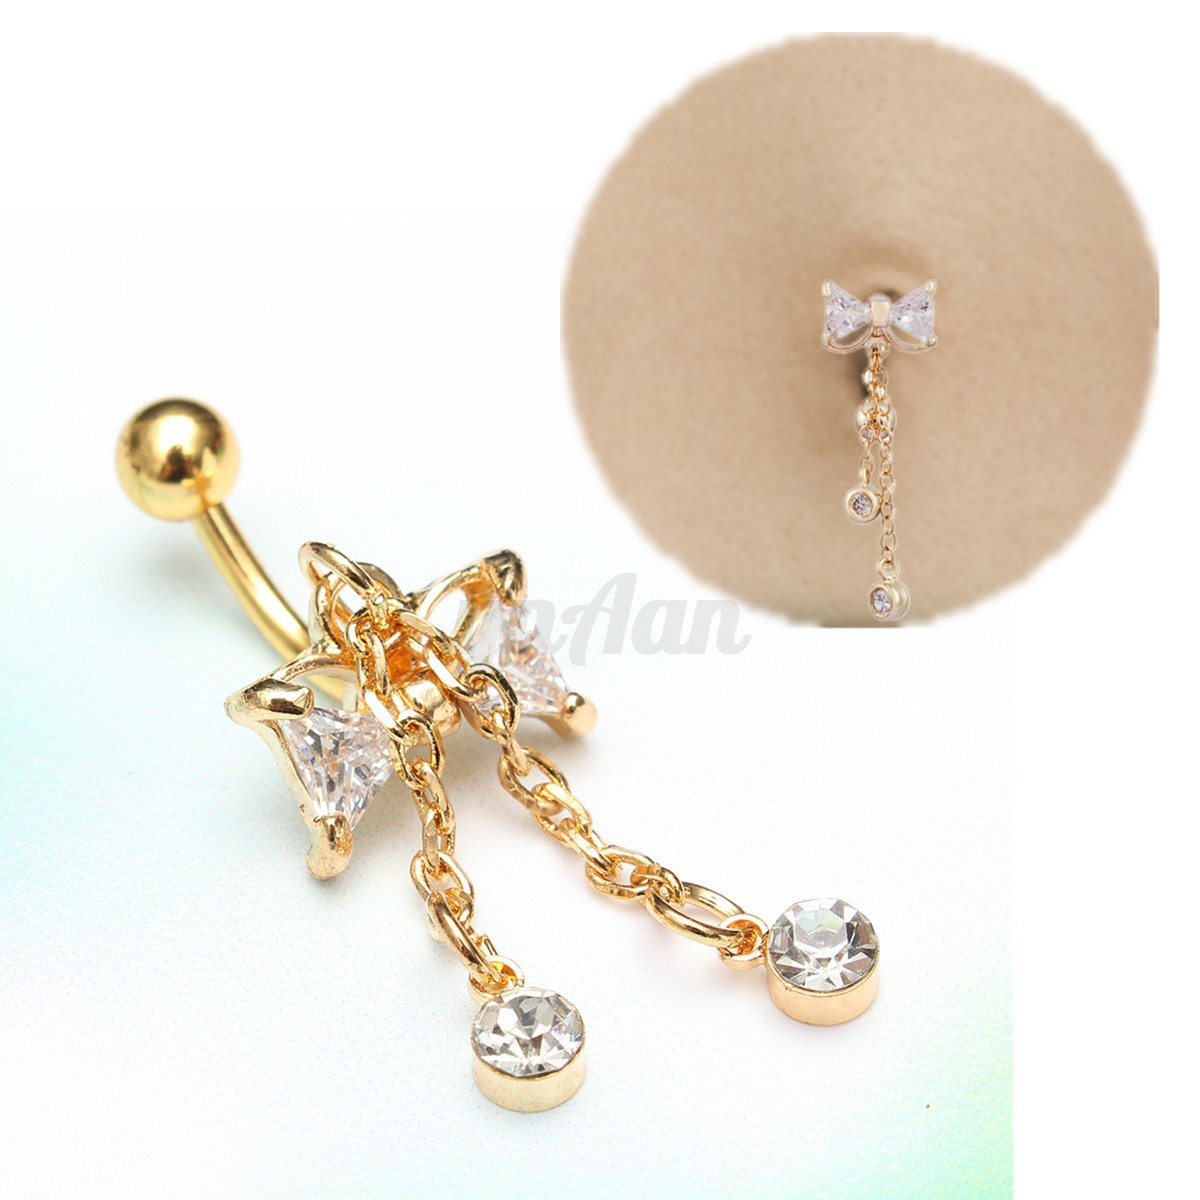 bijoux de corps ventre piercing nombril nez anneau bague nose navel ring cadeau ebay. Black Bedroom Furniture Sets. Home Design Ideas